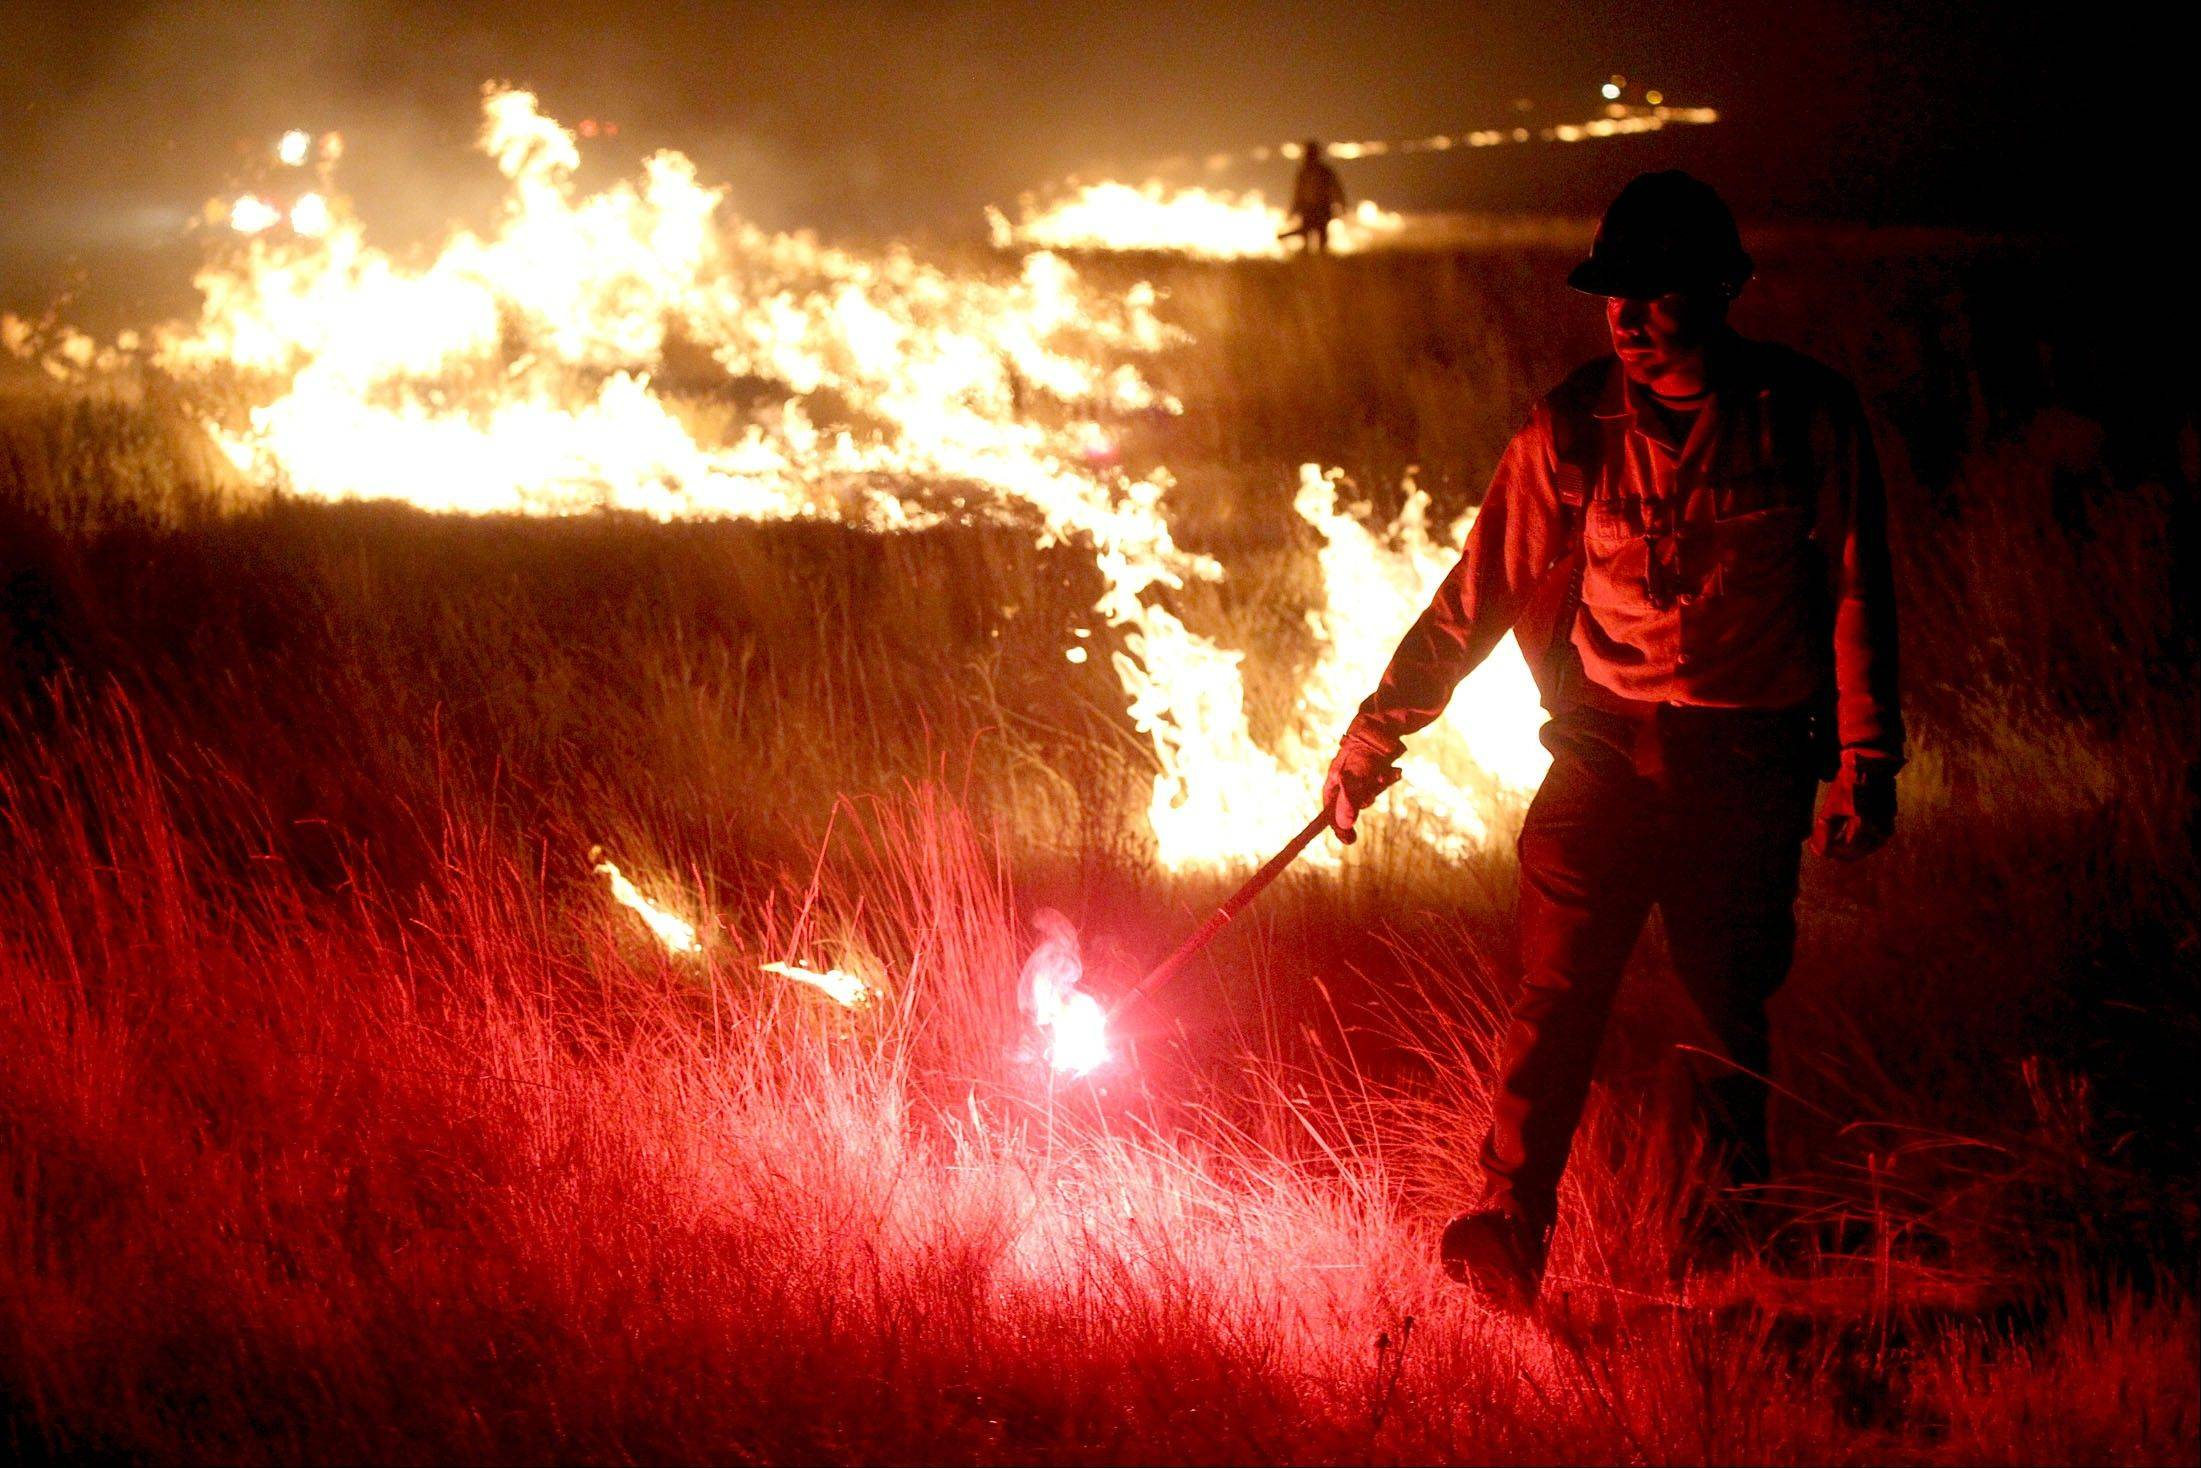 Shawn Torres, of the U.S. Bureau of Land Management, starts a backburn while battling the Kinyon Road Fire west of Castleford, Idaho, on Saturday. More than 150 firefighters are fighting the blaze that has consumed more than 75,000 acres.